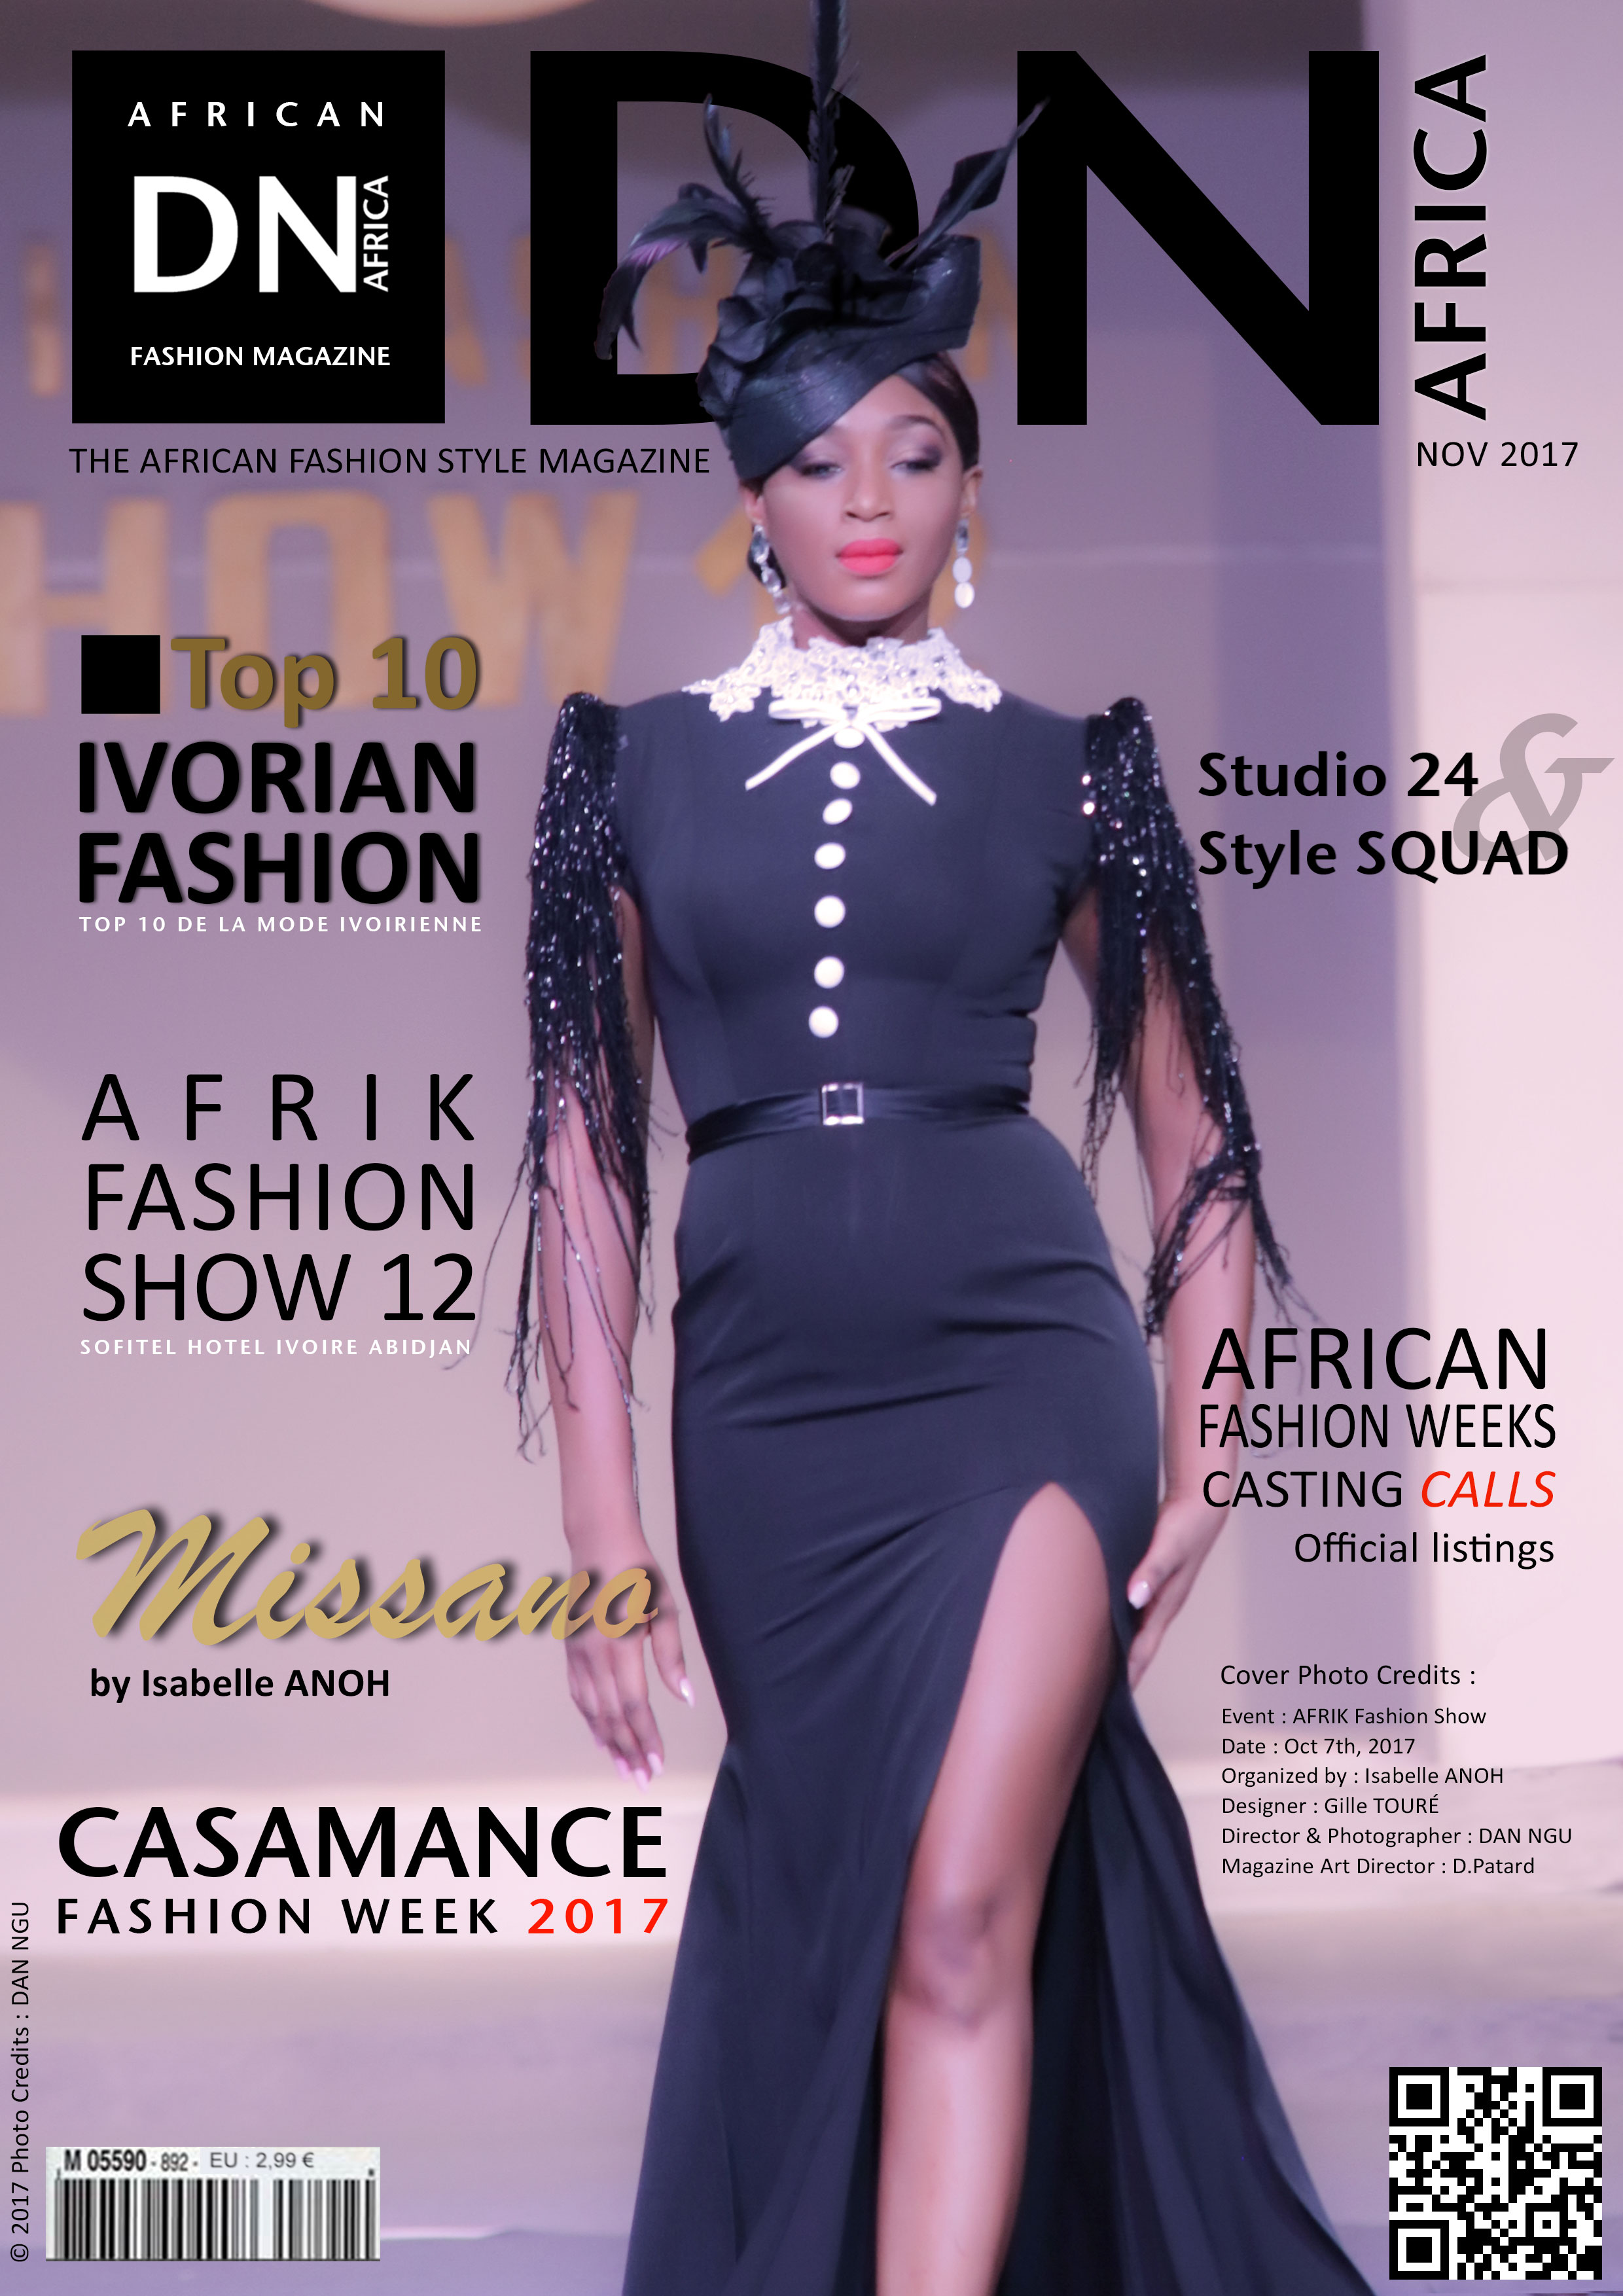 DNAFRICA-african-fashion-style-magazine-nov-2017-final